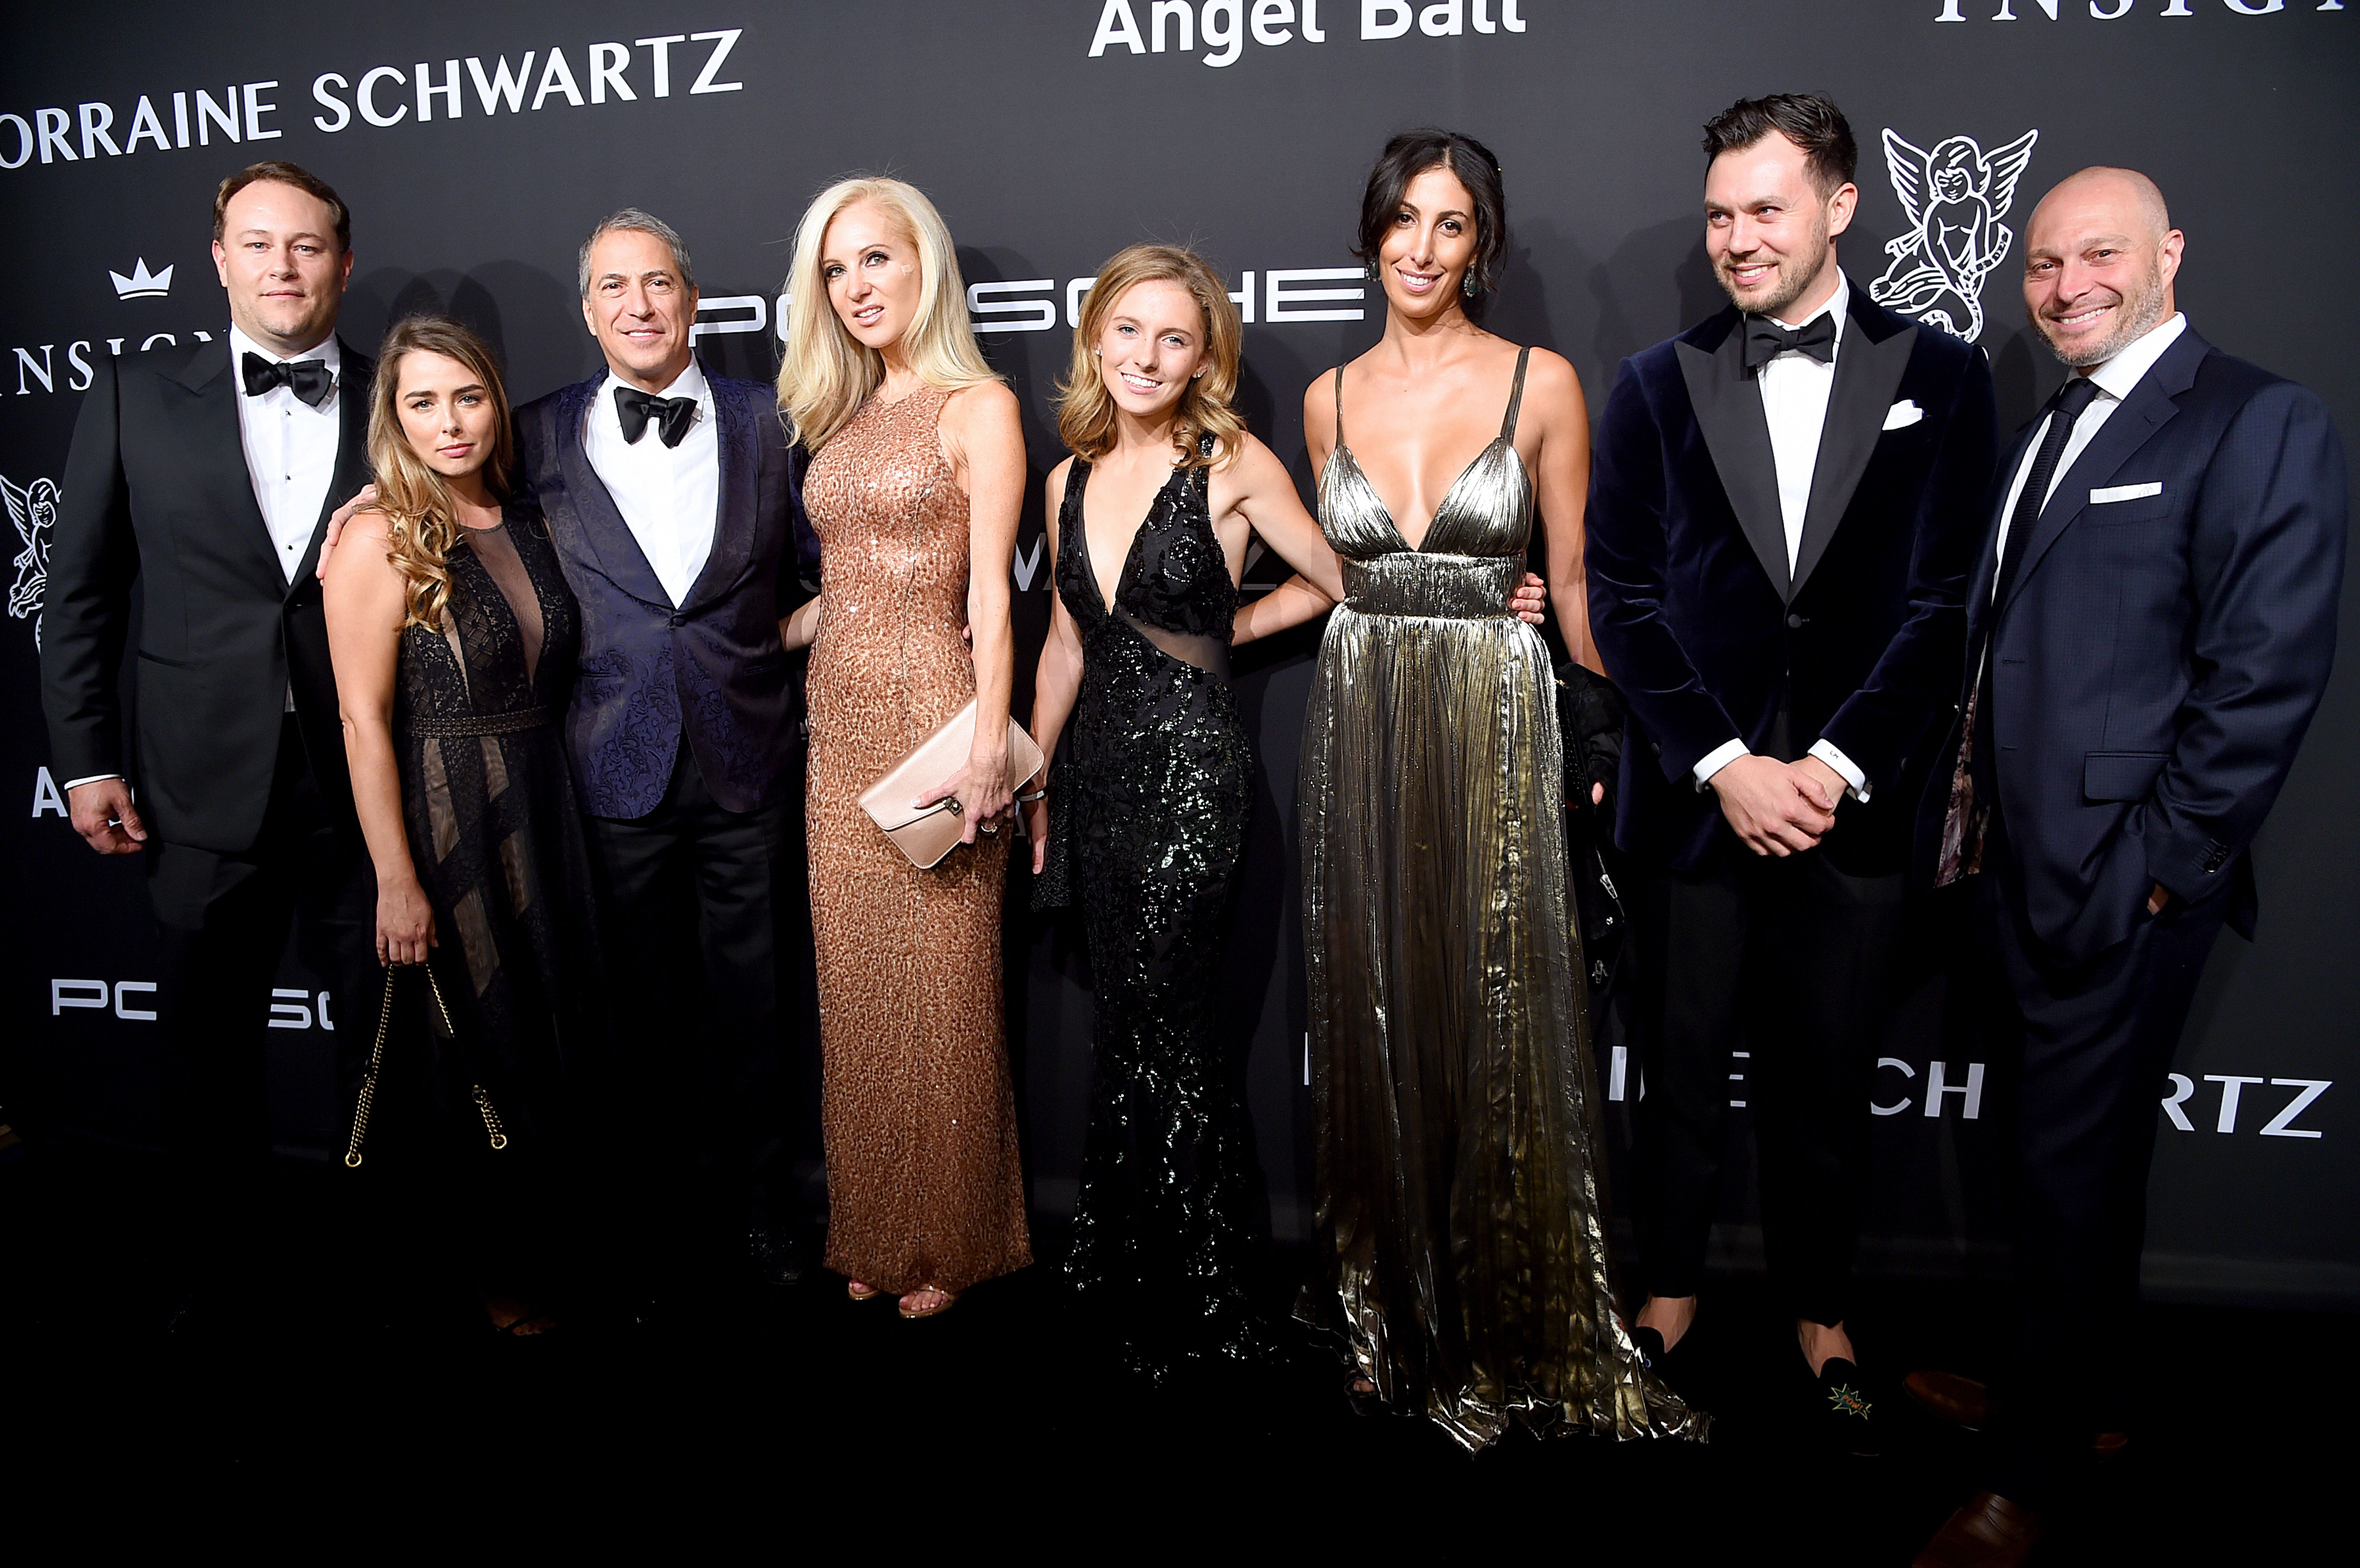 The Angel Ball Draws A Star-Studded Crowd